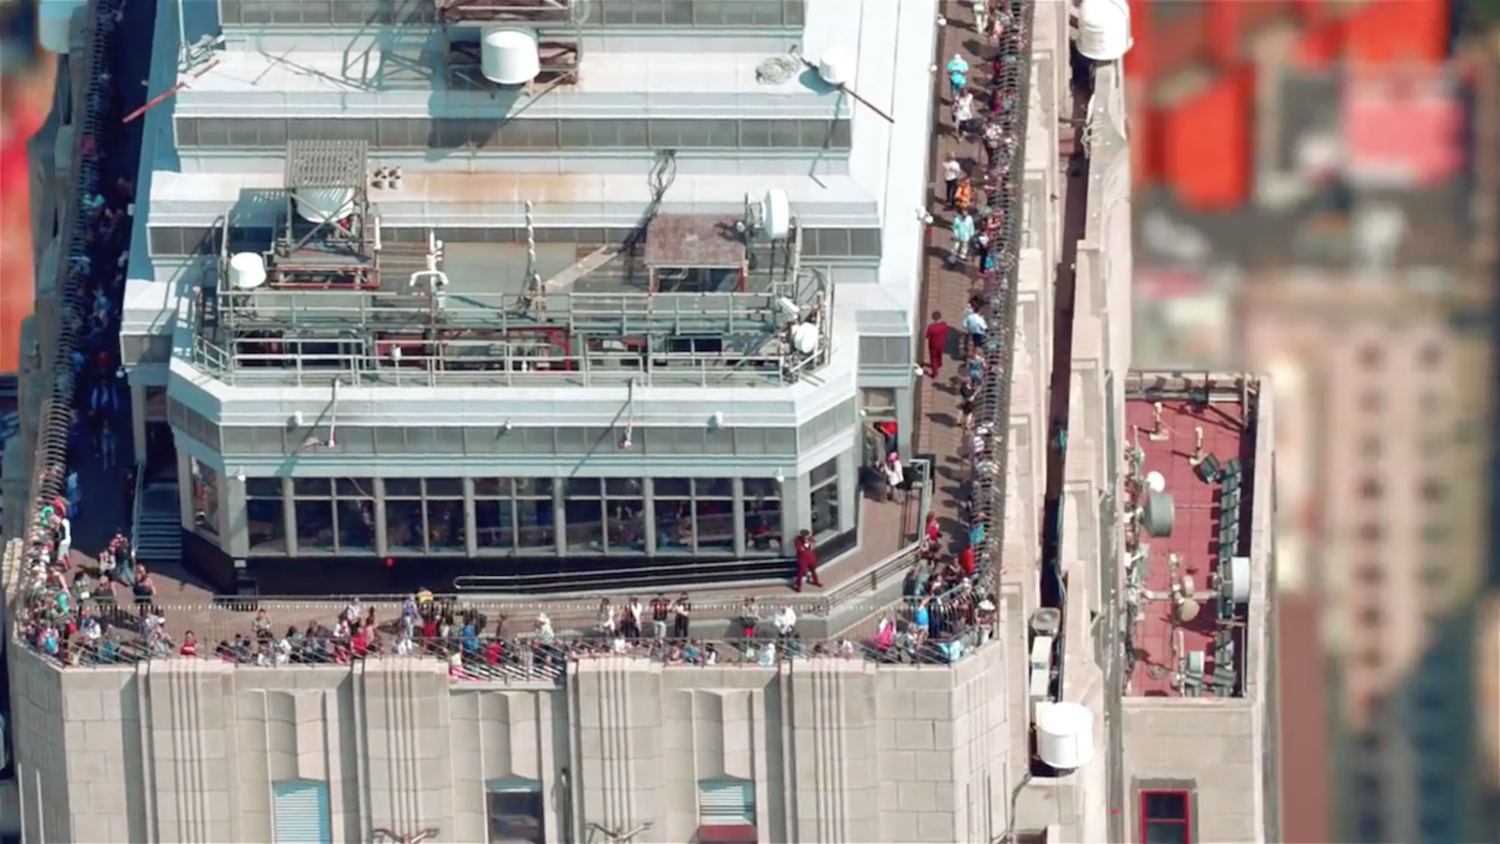 The camera captures a rare view of the Empire State Building's 86th floor observation deck from above. As a testament to its popularity, more money is generated from the observatory than the renting of office space in the building.